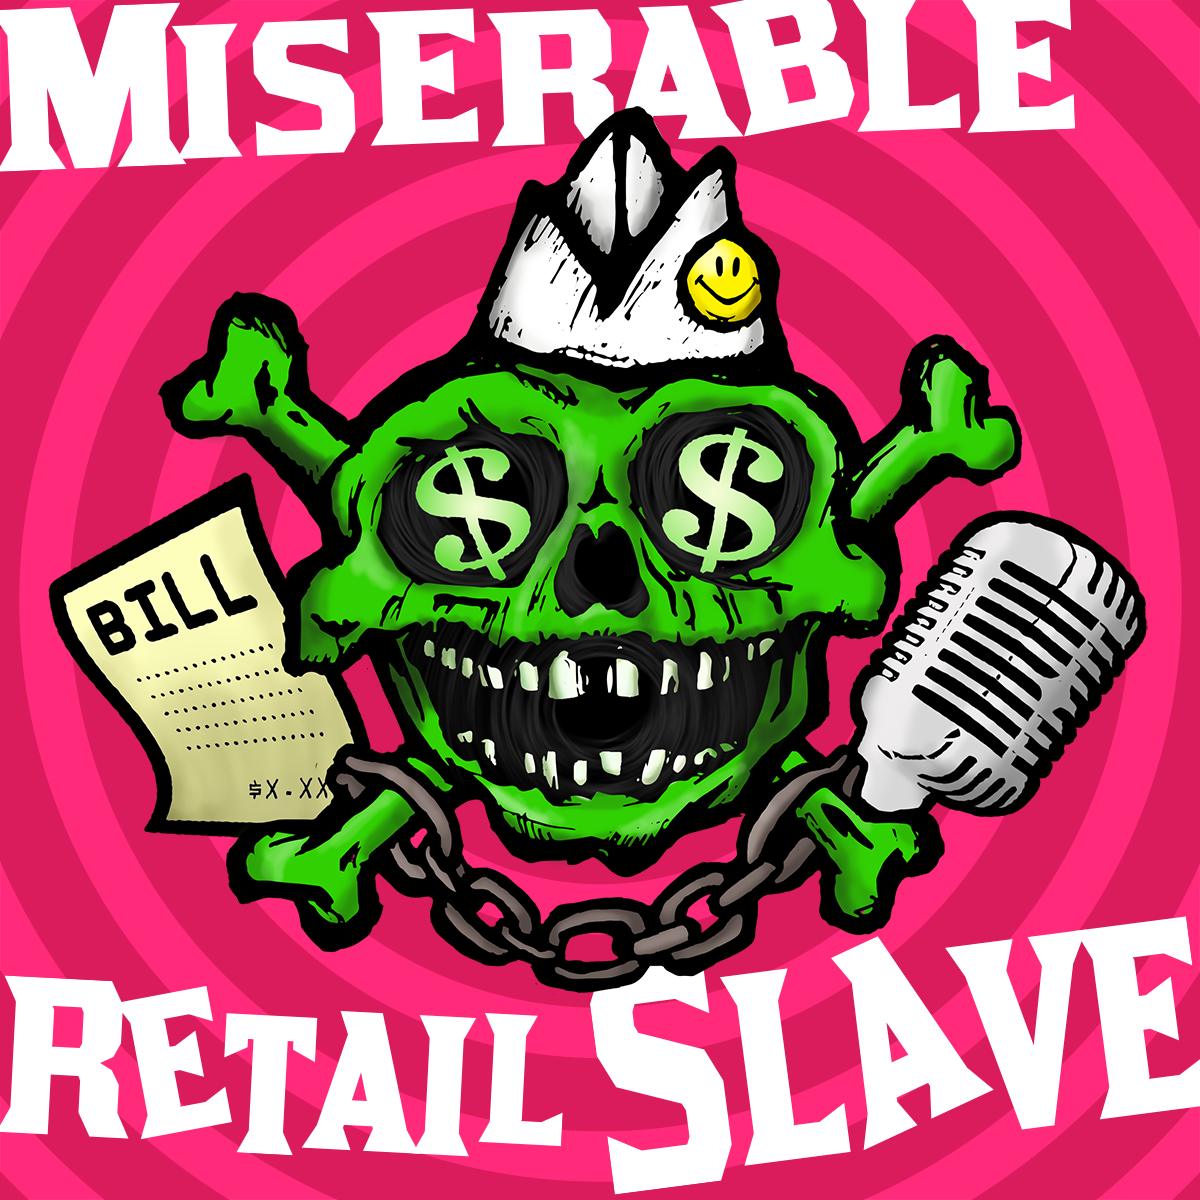 Miserable Retail Slave.